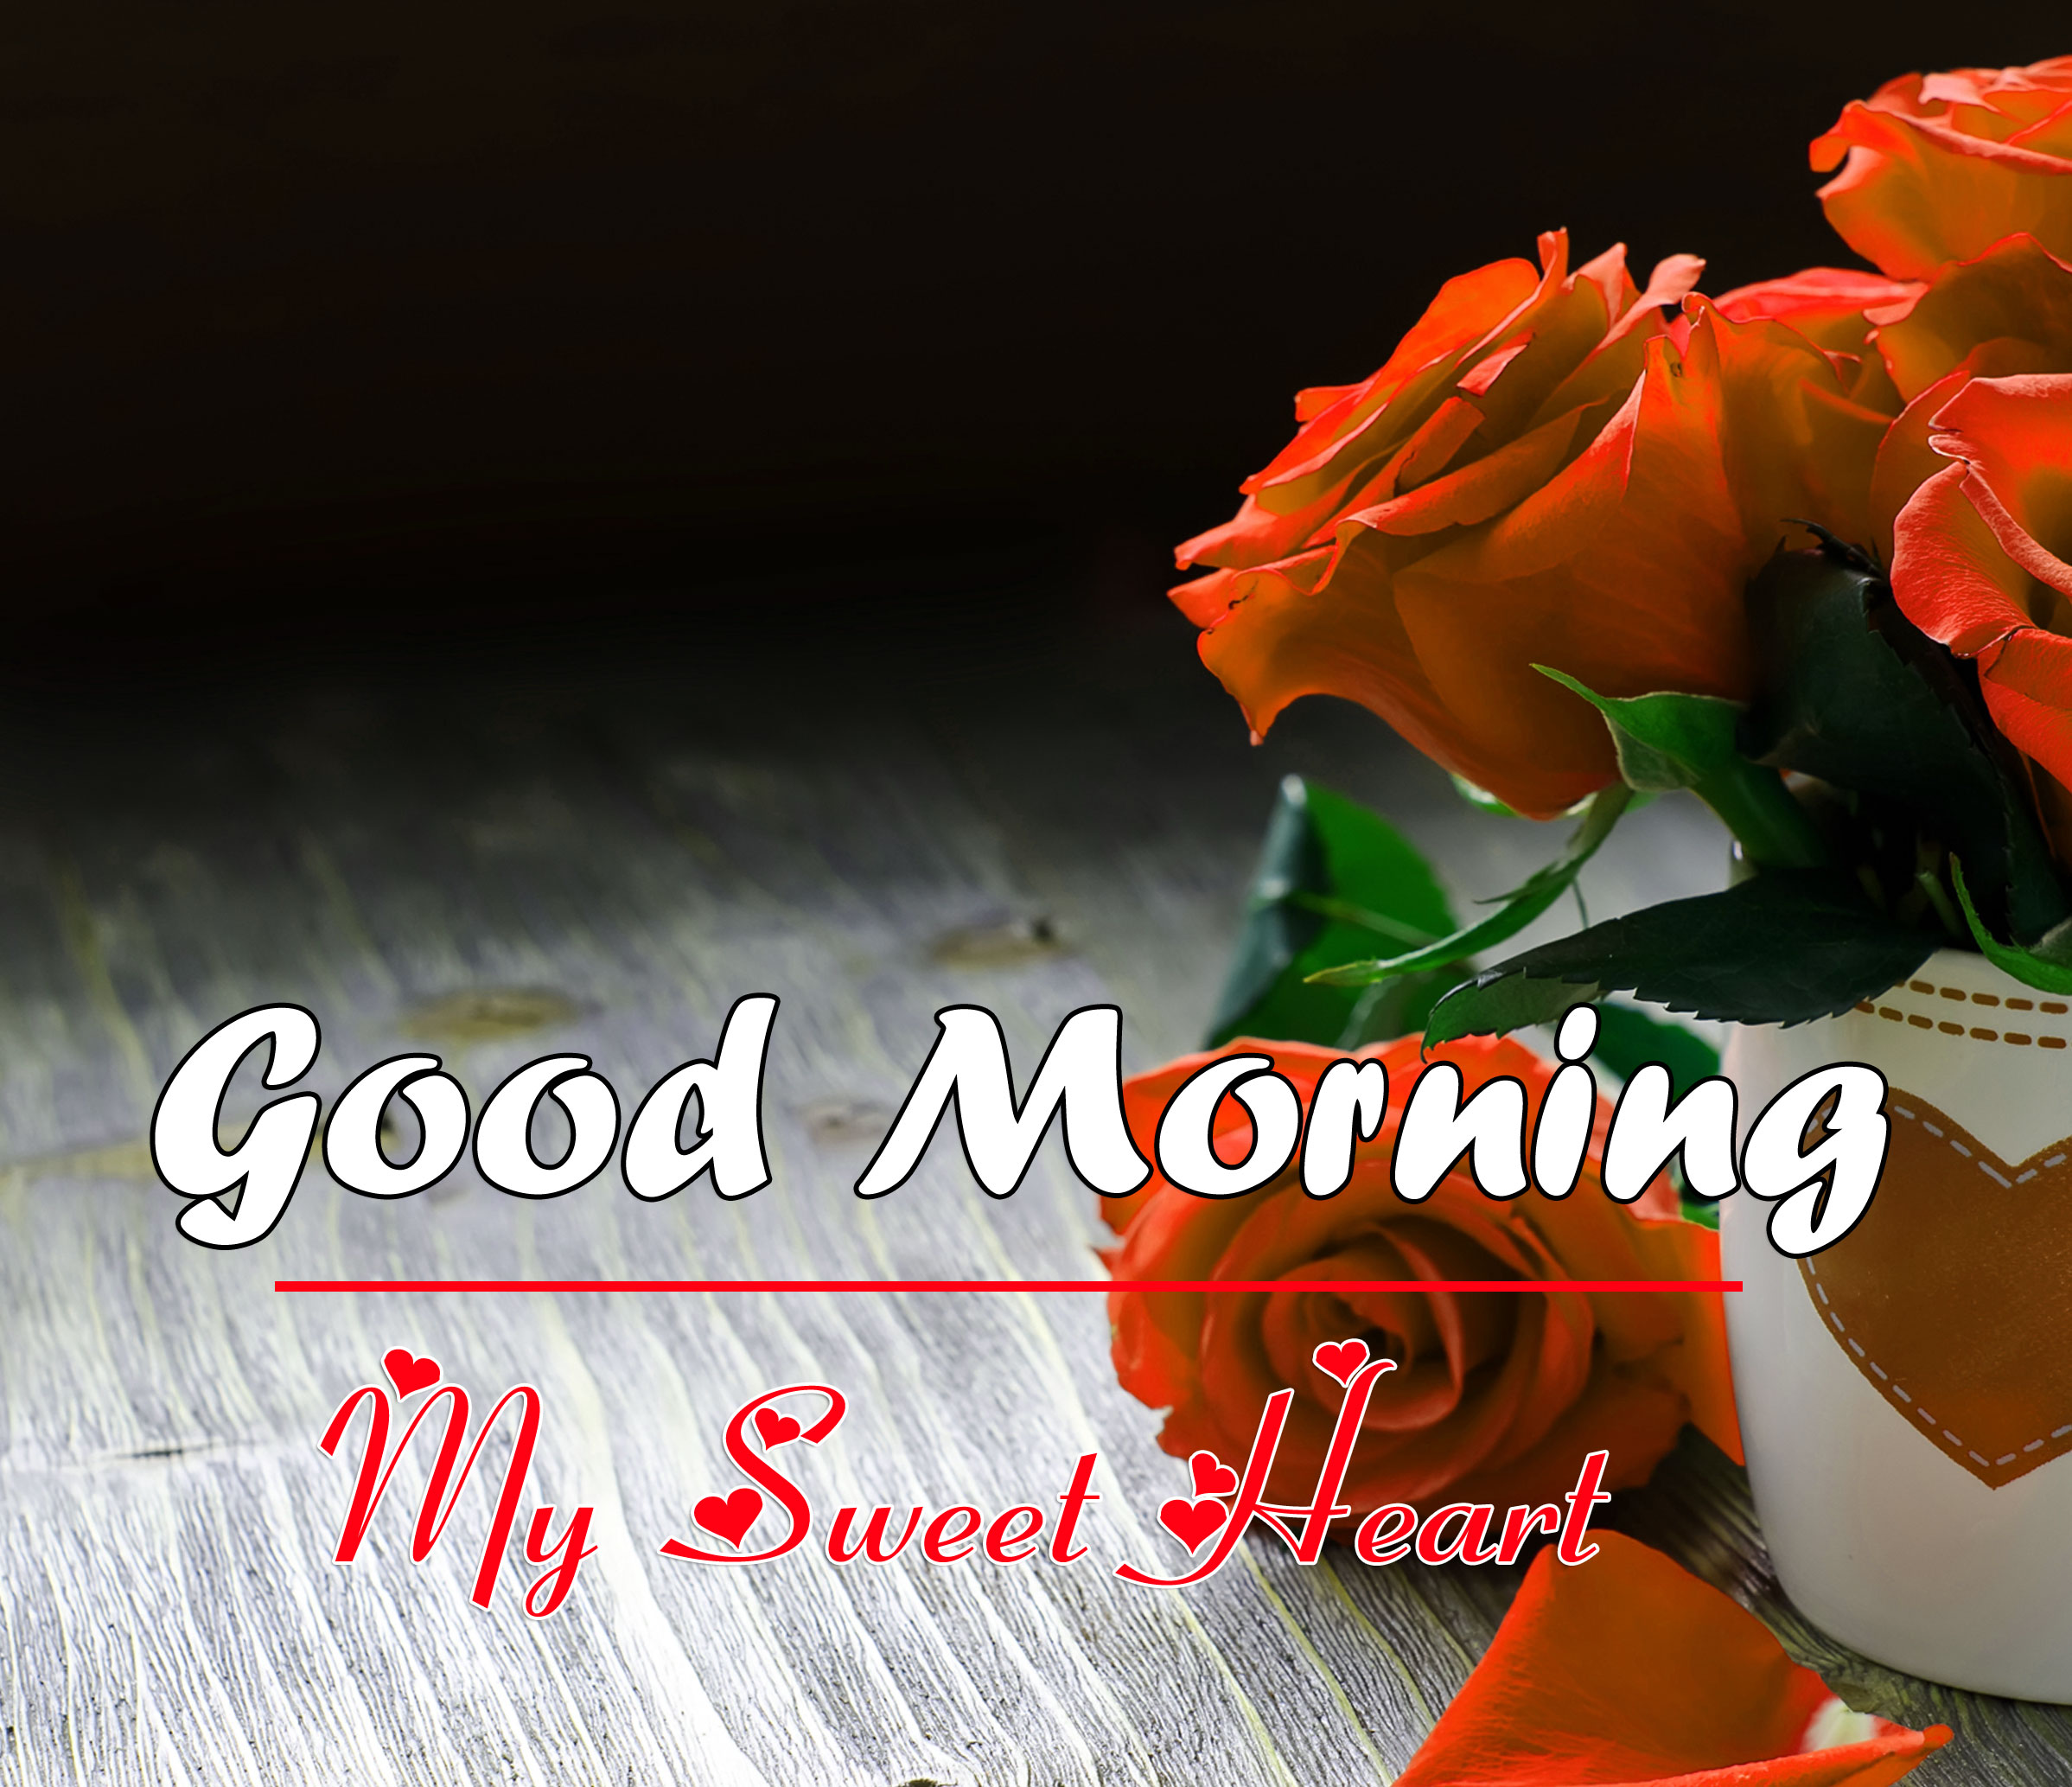 Good Morning Wishes Wallpaper 2021 2